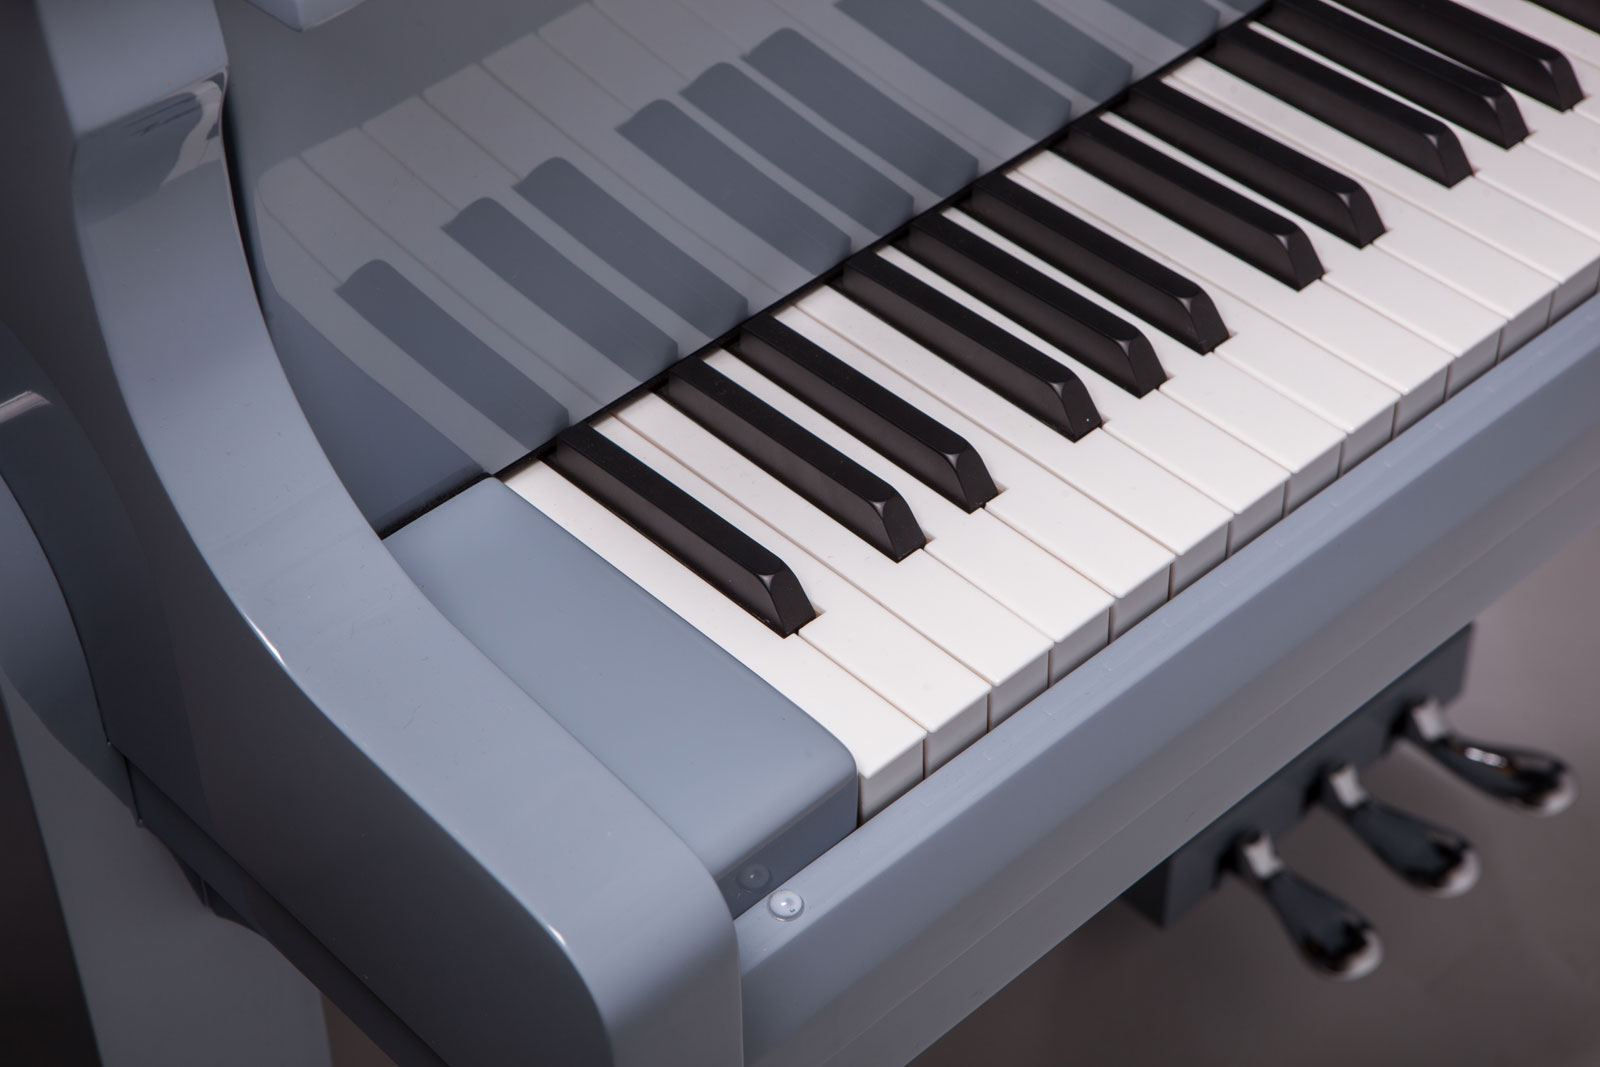 Edelweiss Lets You Tinkle With The Look Of Their Self-Playing Pianos 8